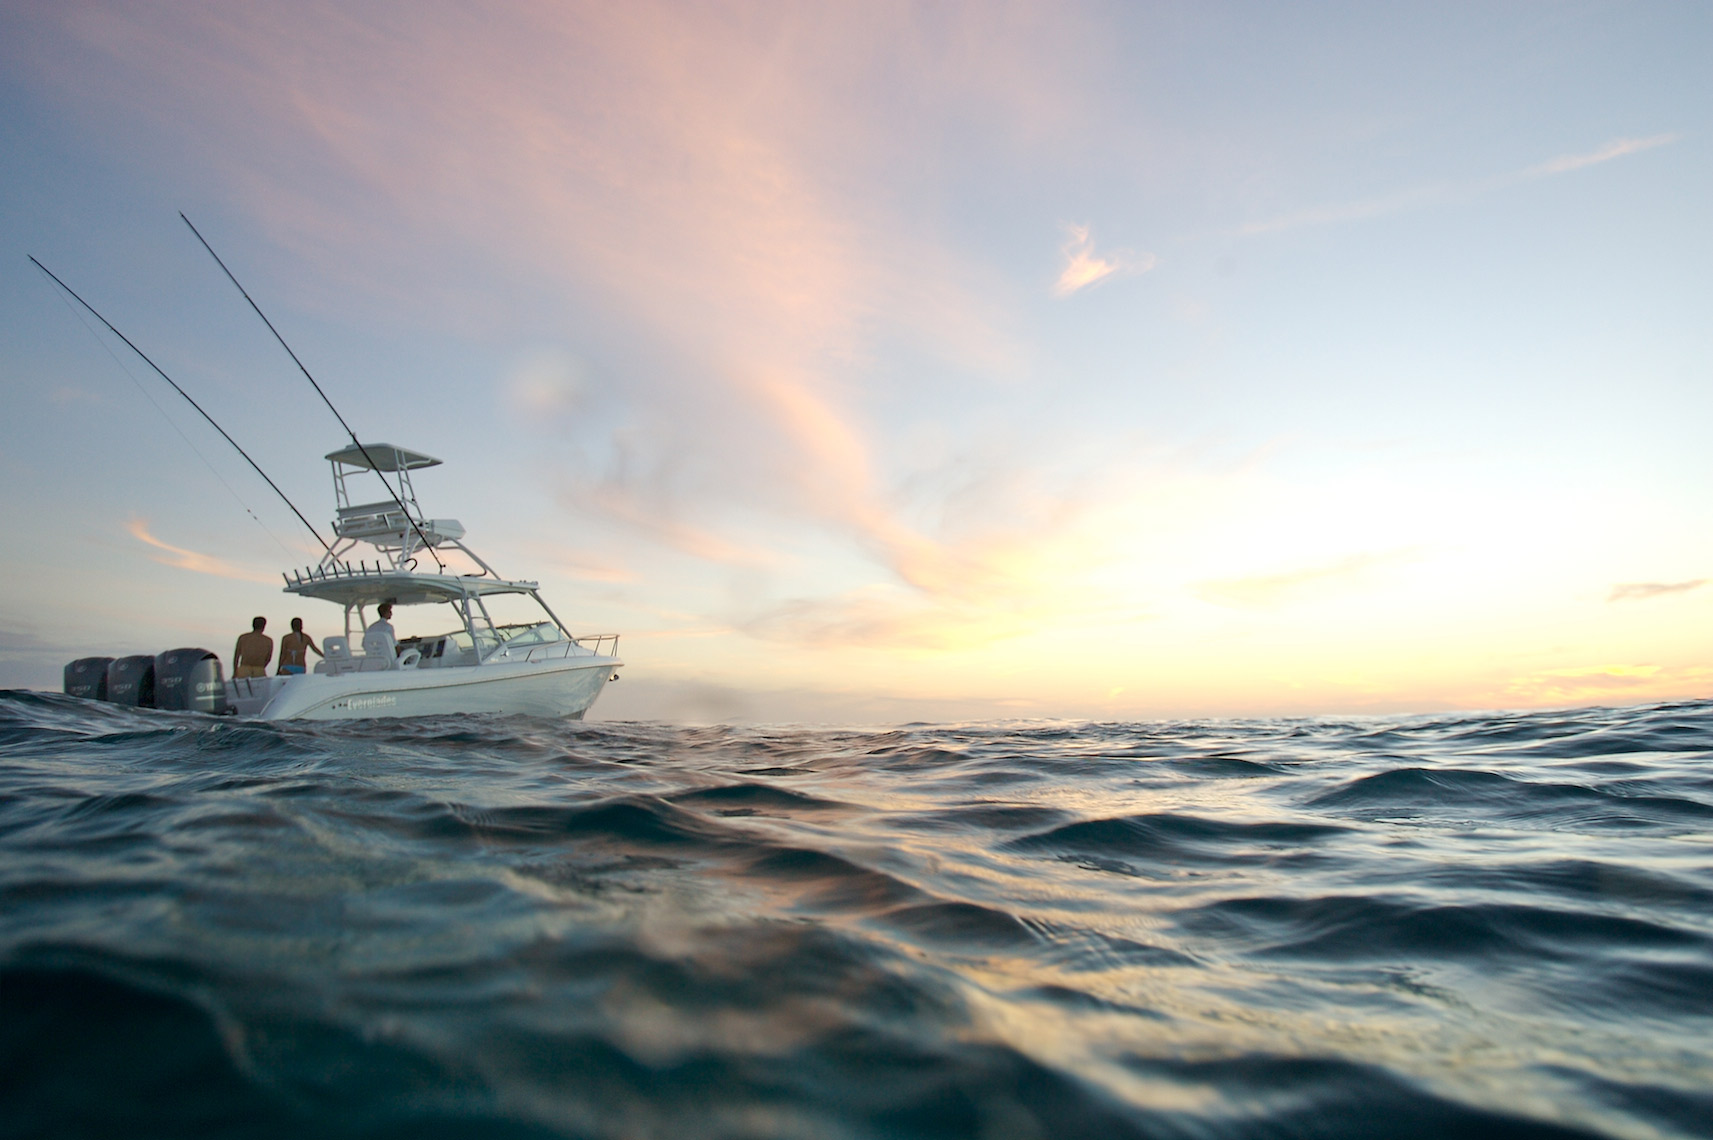 sportfishing yacht sunset_Y0U8290_Robert Holland.jpg